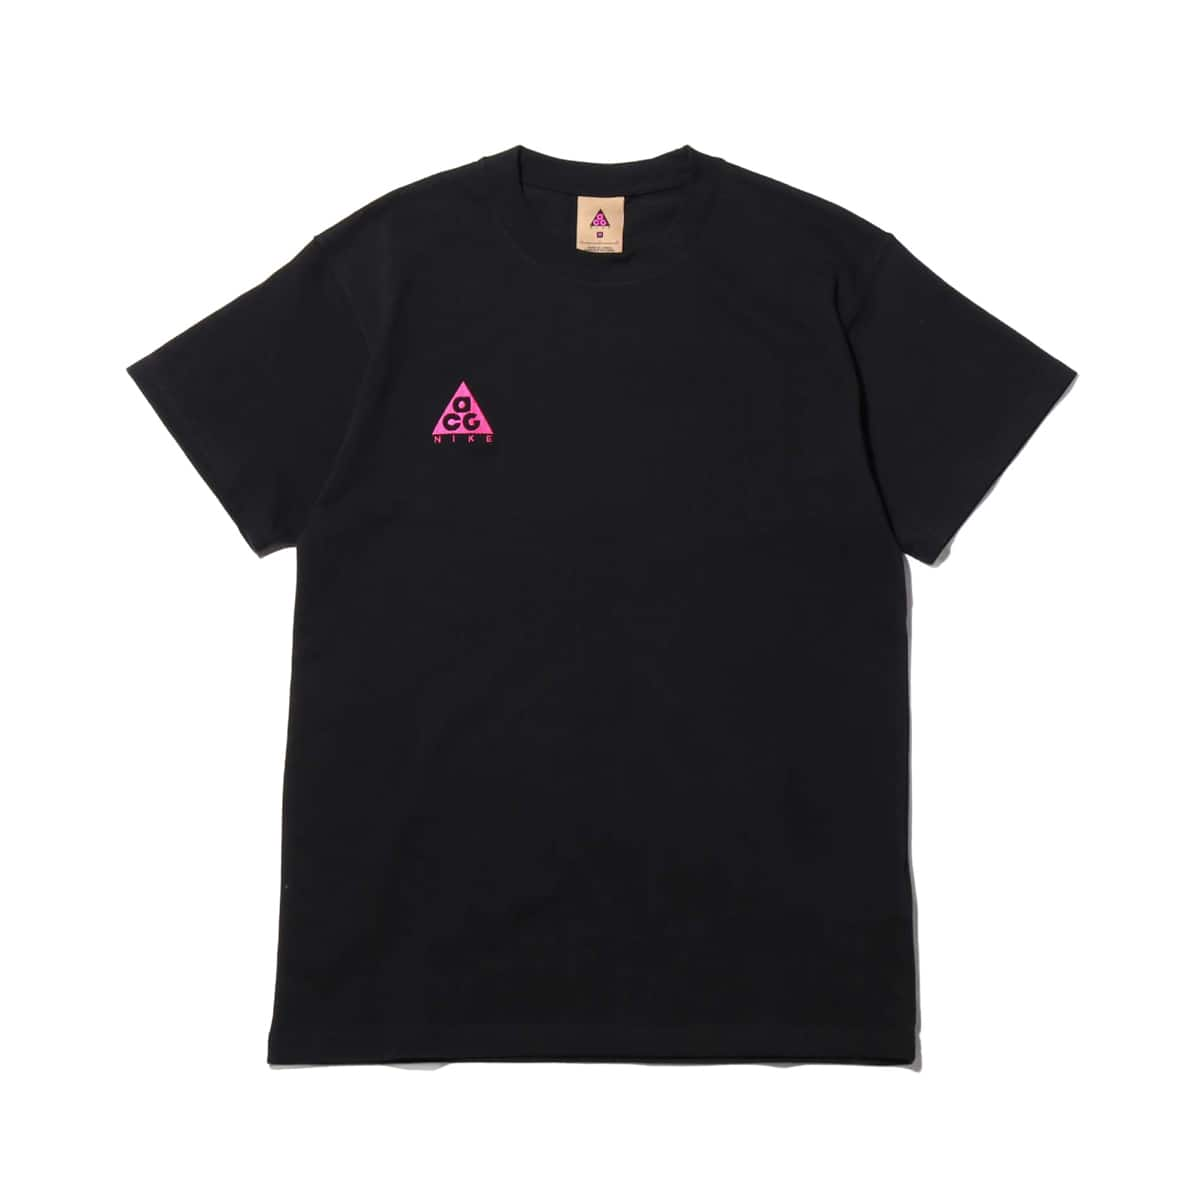 NIKE AS M NRG ACG SS TEE LOGO BLACK/ACTIVE FUCHSIA 20SP-S_photo_large